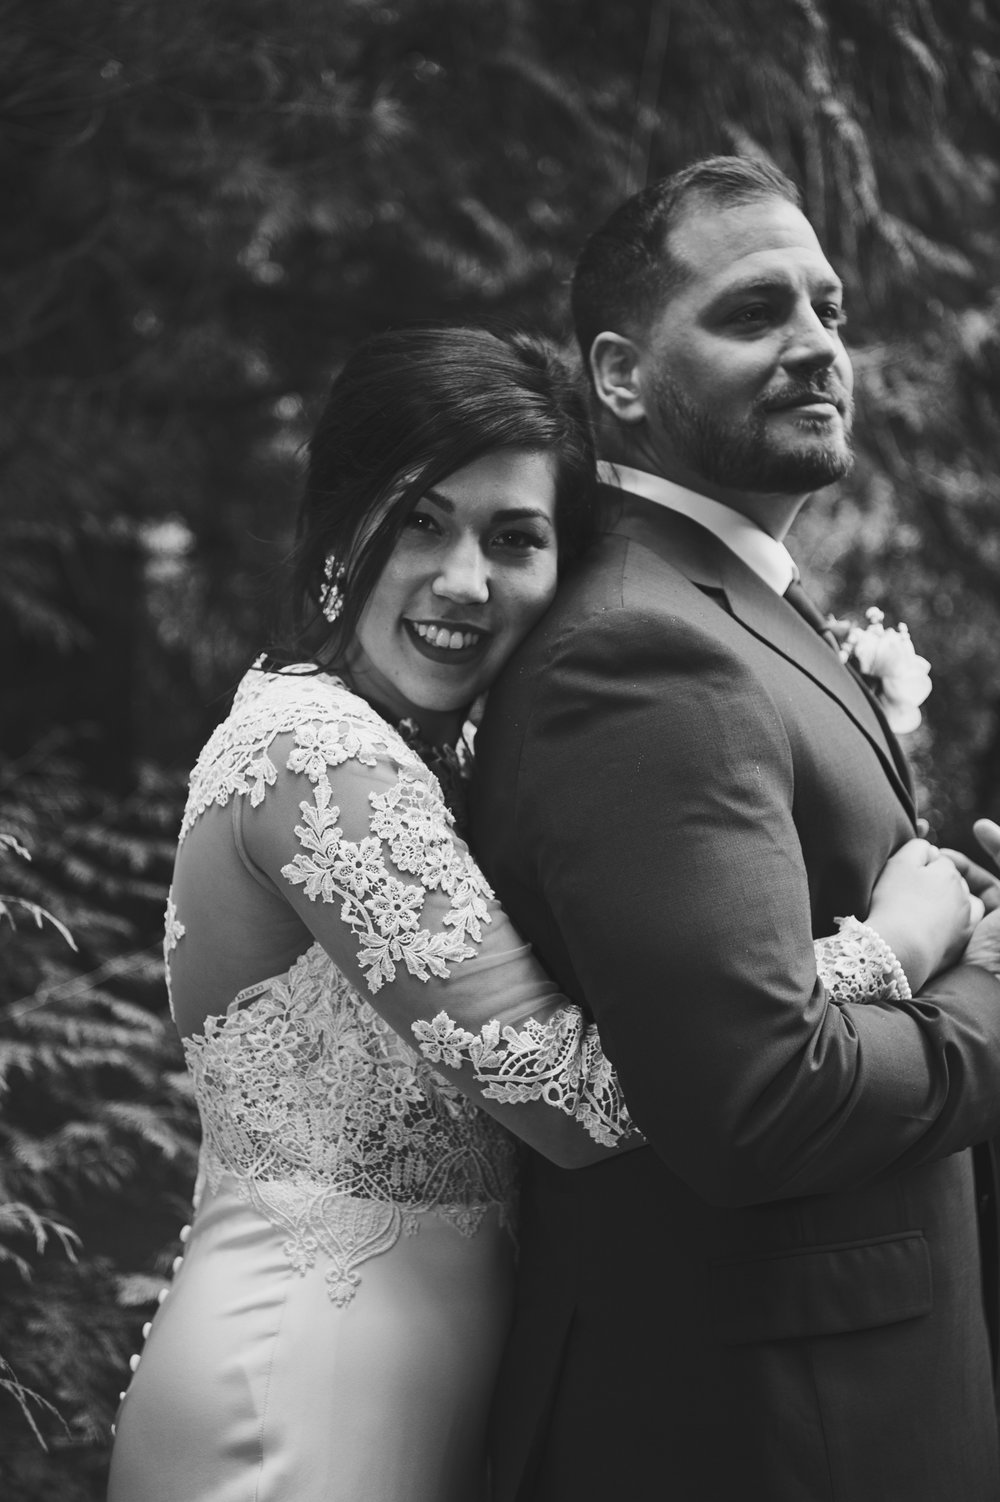 Woodsy Wedding_Kitsap Memorial State Park Wedding_Kelsey Lane Photography_intimate bride and groom